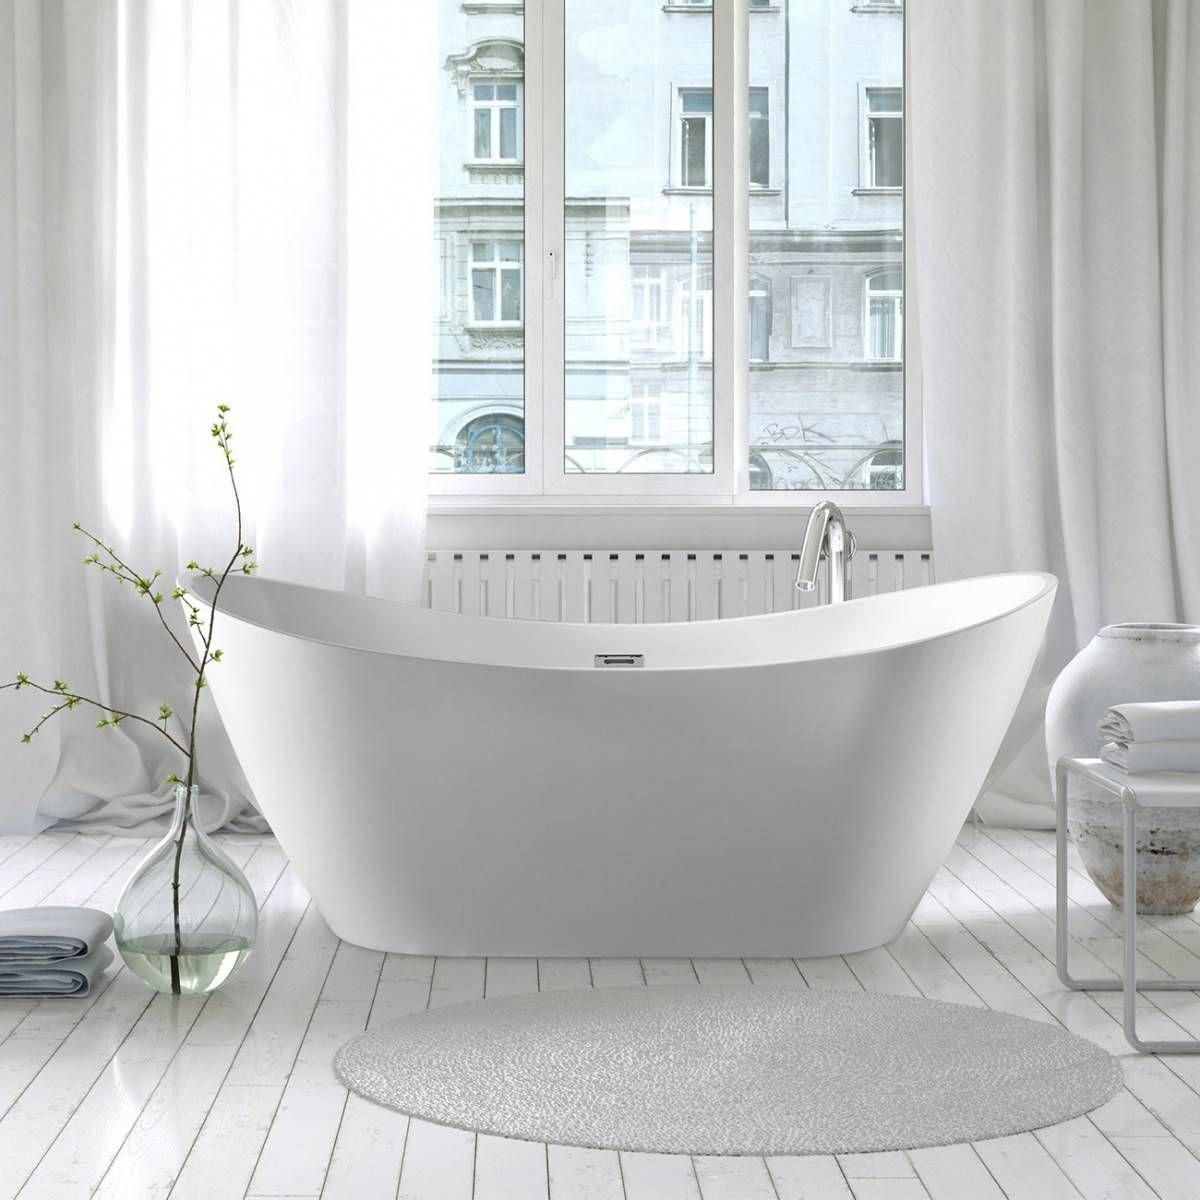 Philo Acrylic Double Ended Freestanding Tub No Faucet Drillings